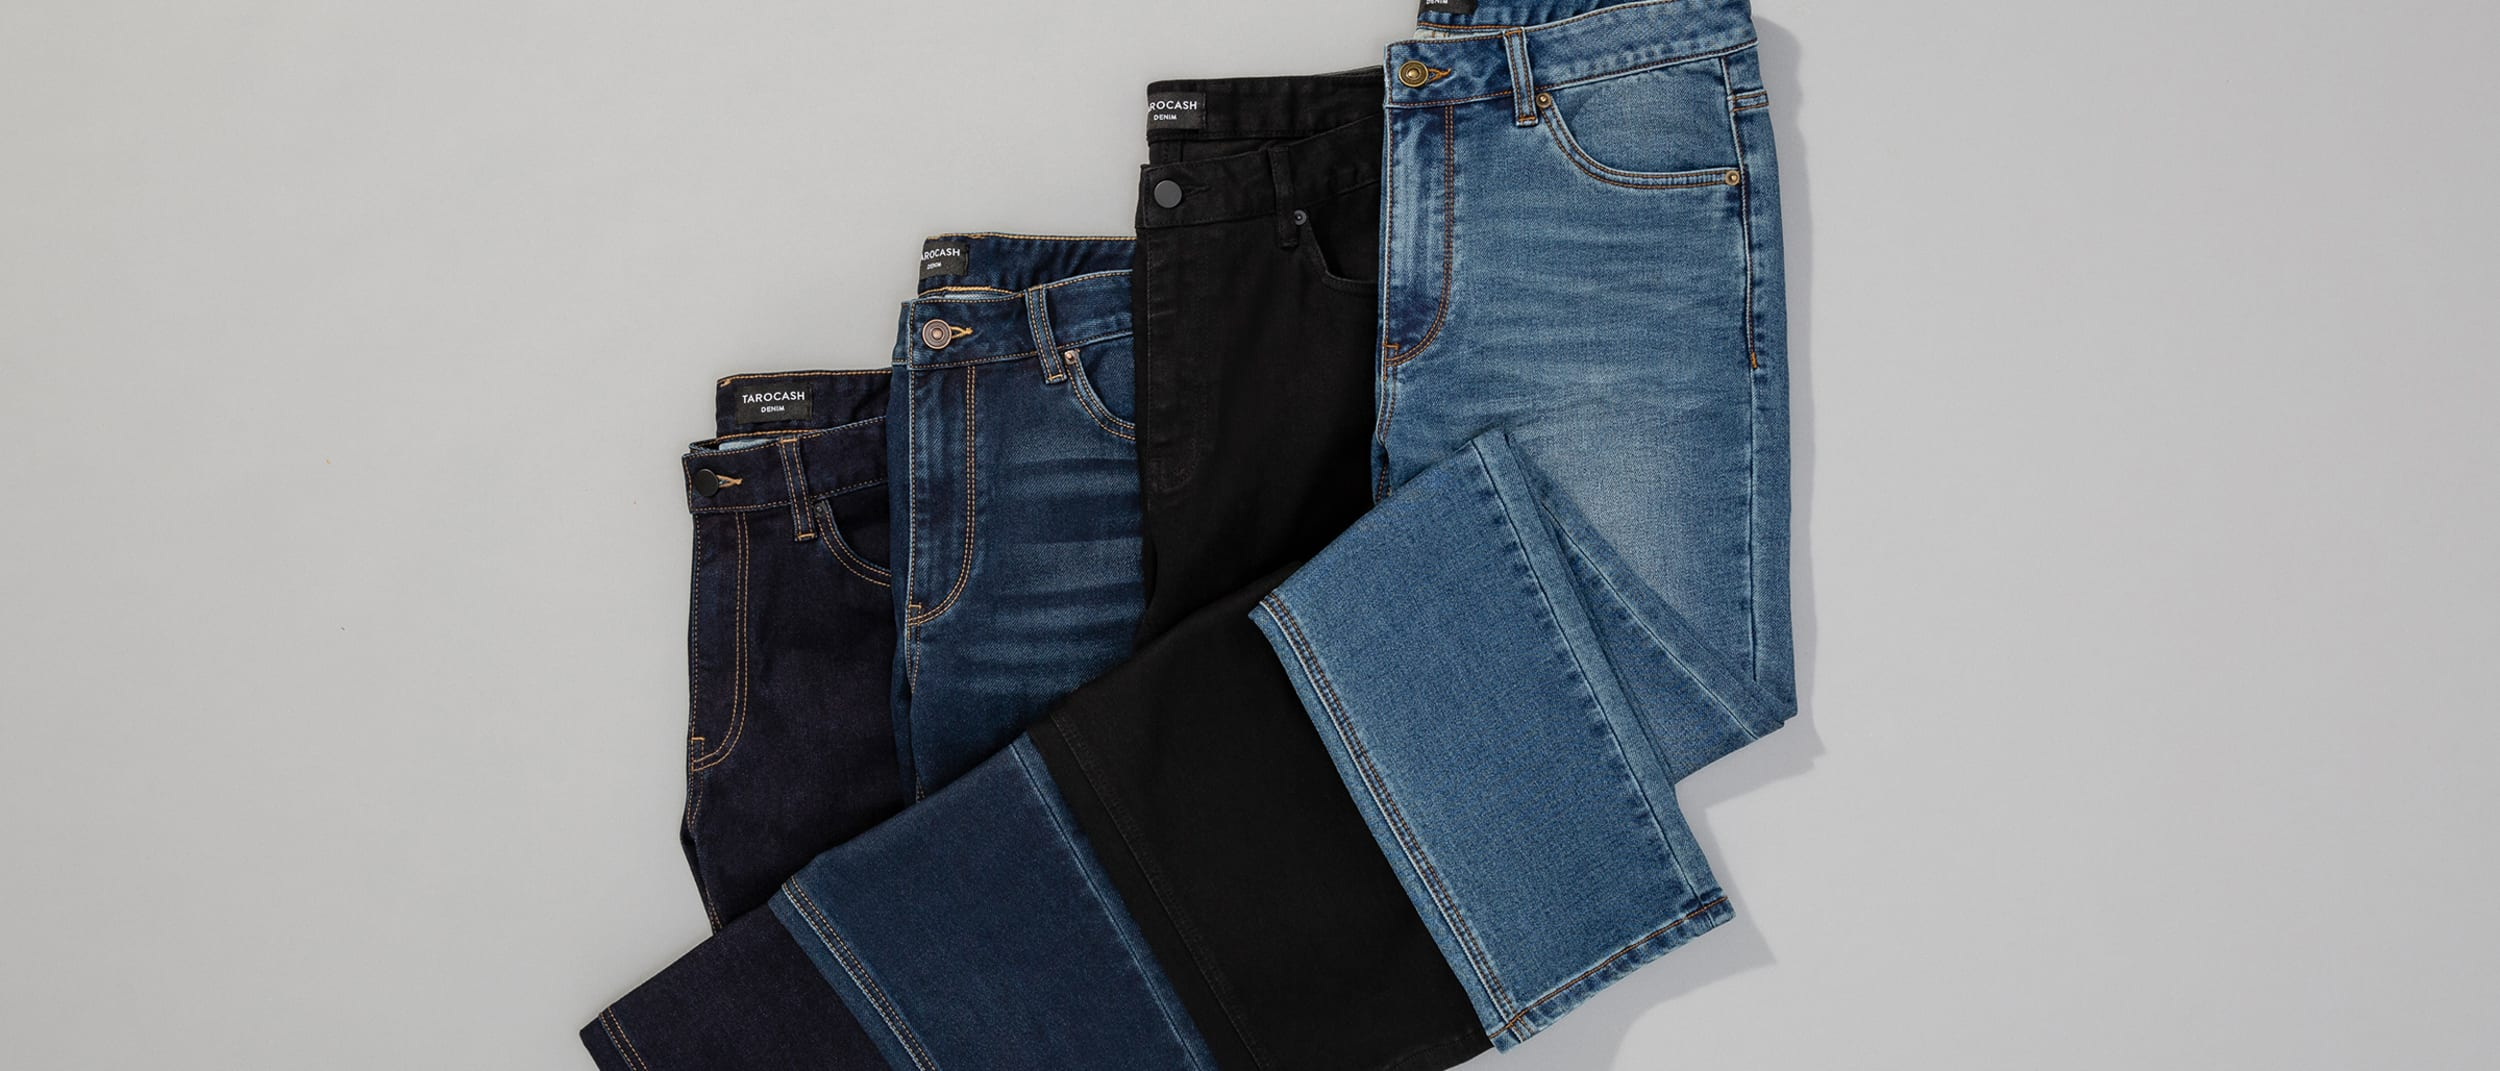 Tarocash: 30% off denim